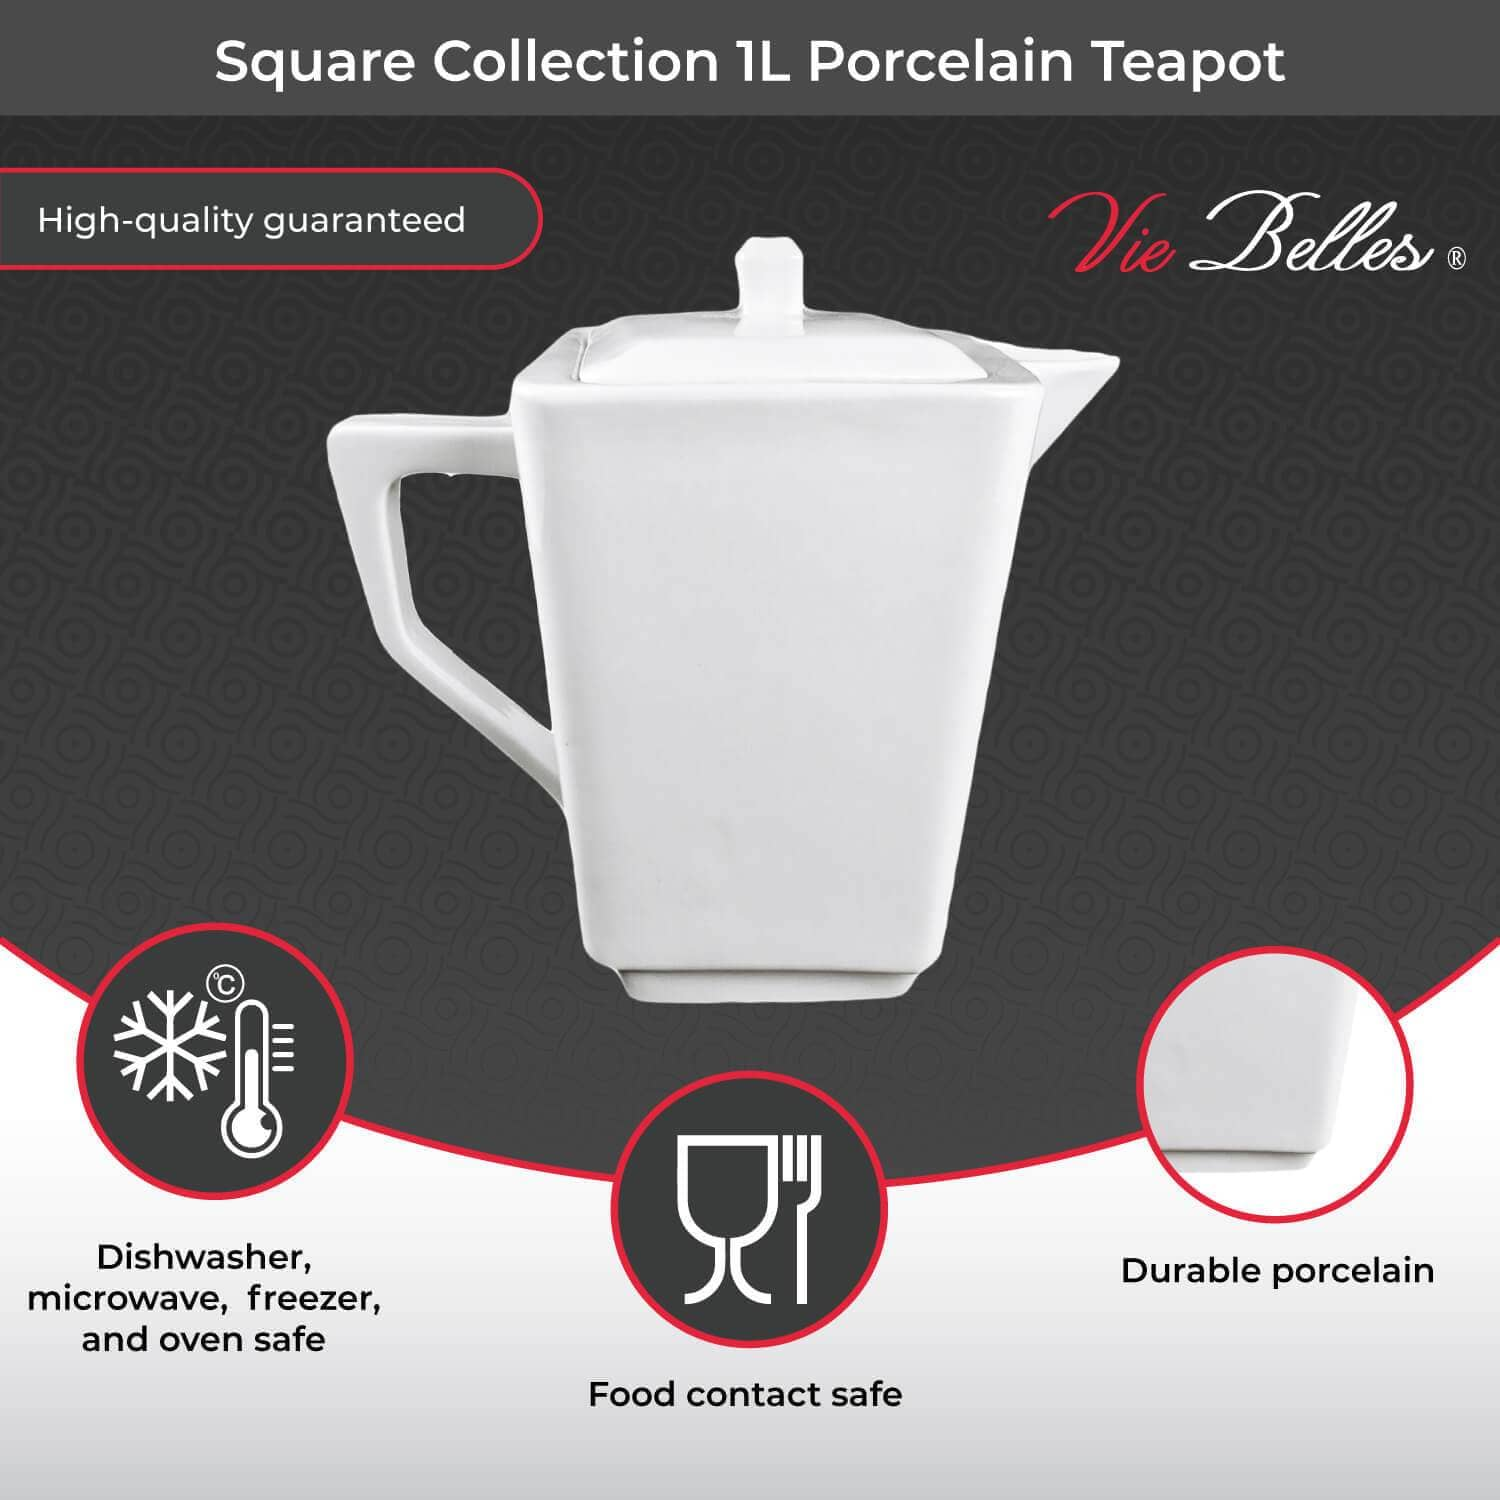 Vie Belles Coffee | Tea Press Square Collection 1L Porcelain Teapot